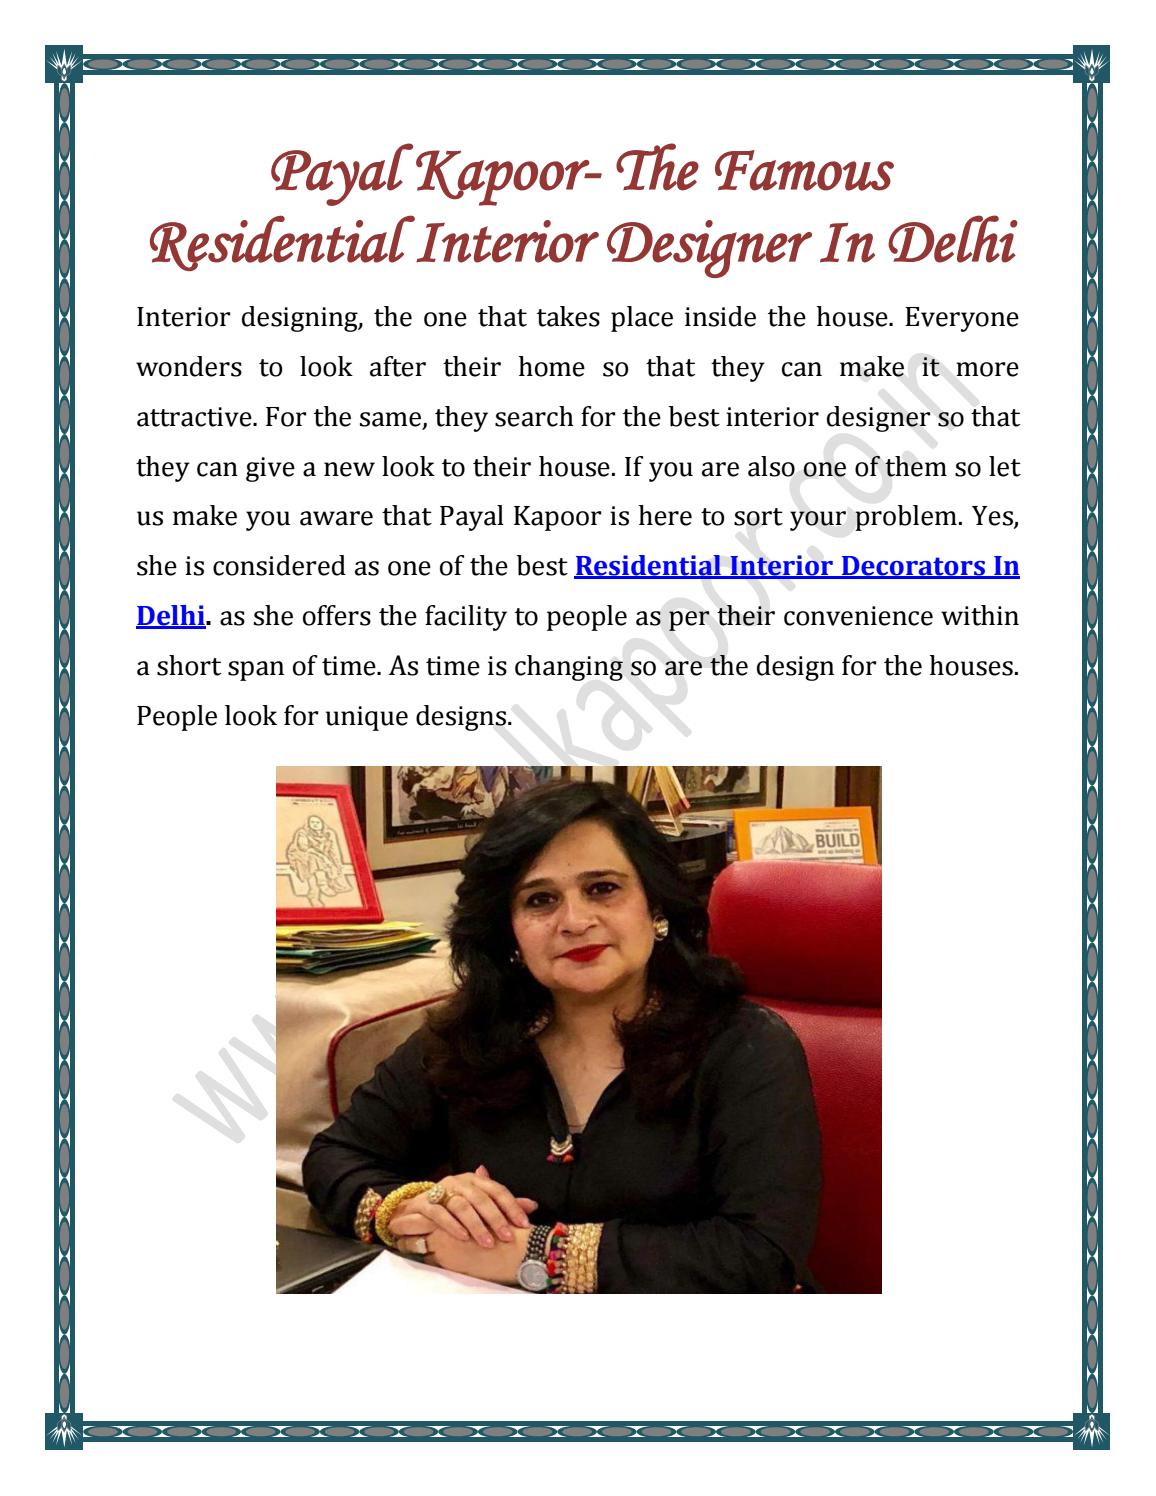 Payal Kapoor The Famous Residential Interior Designer In Delhi By Payalkapoor Issuu